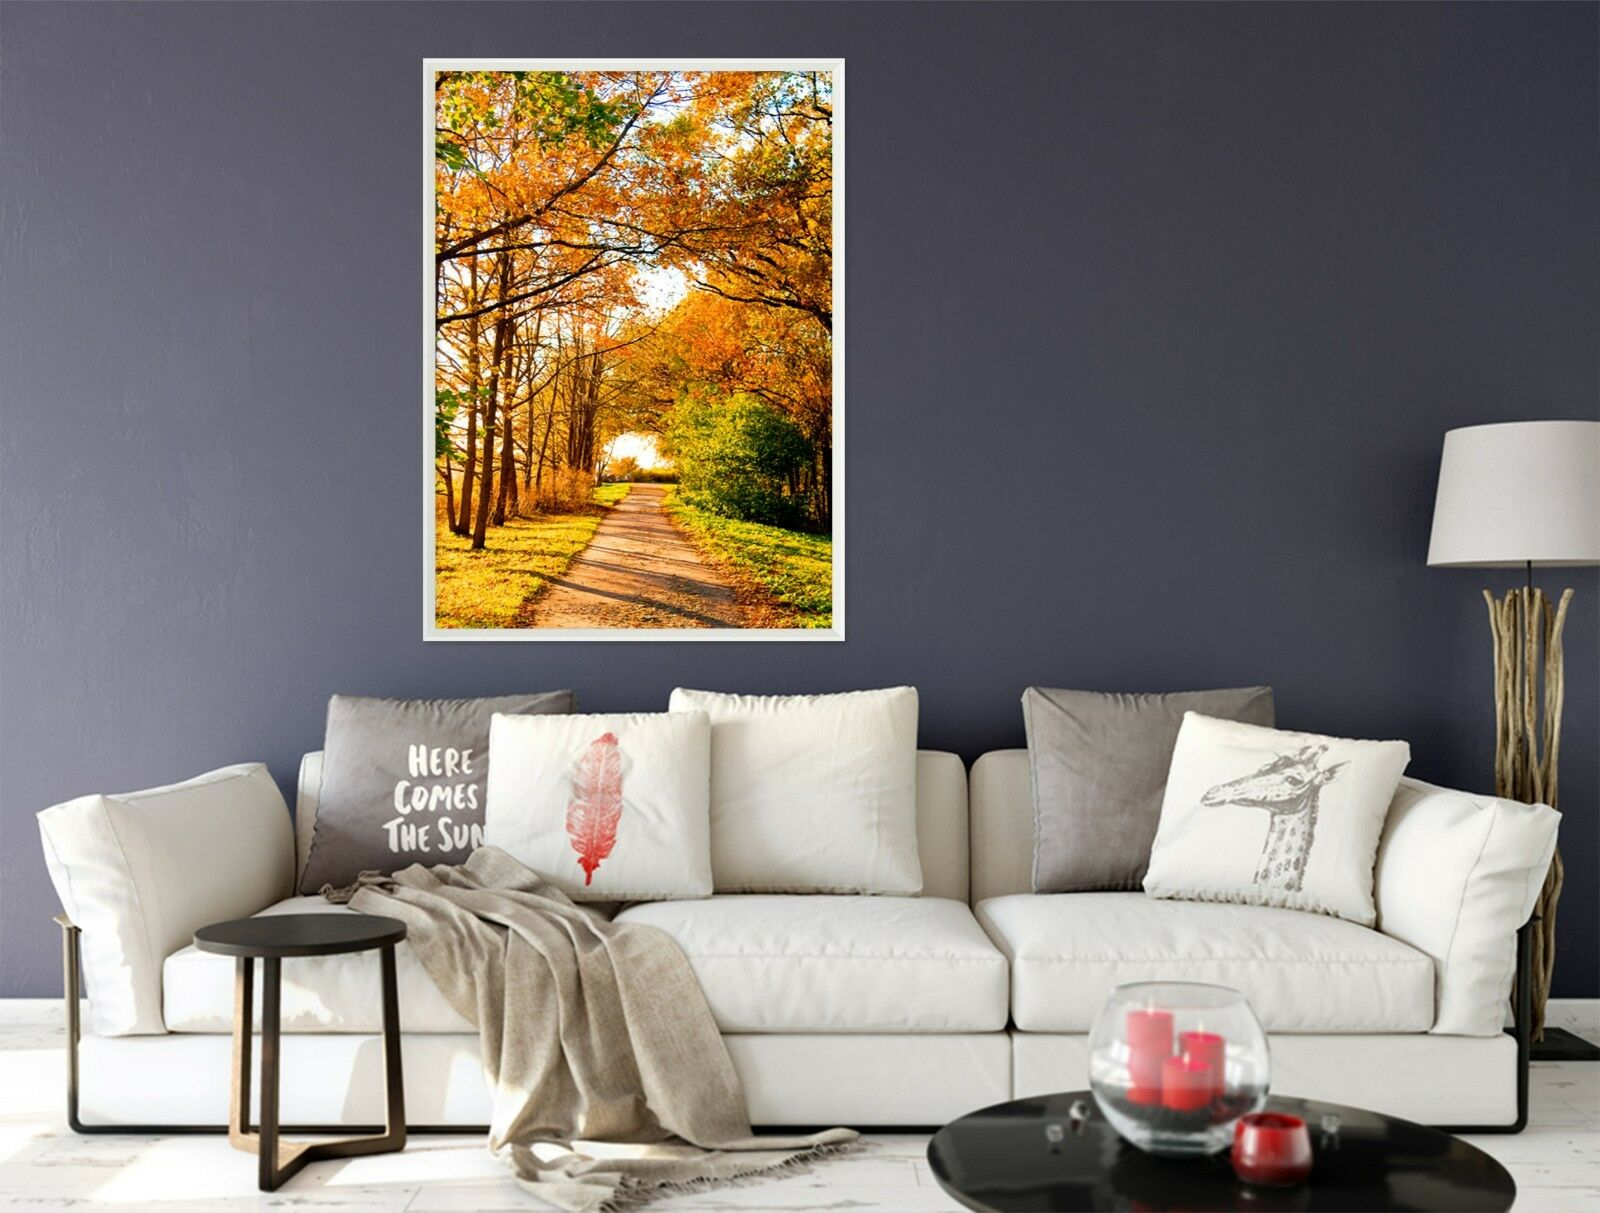 3D Maple Road 6 Framed Poster Home Decor Print Painting Art AJ AU